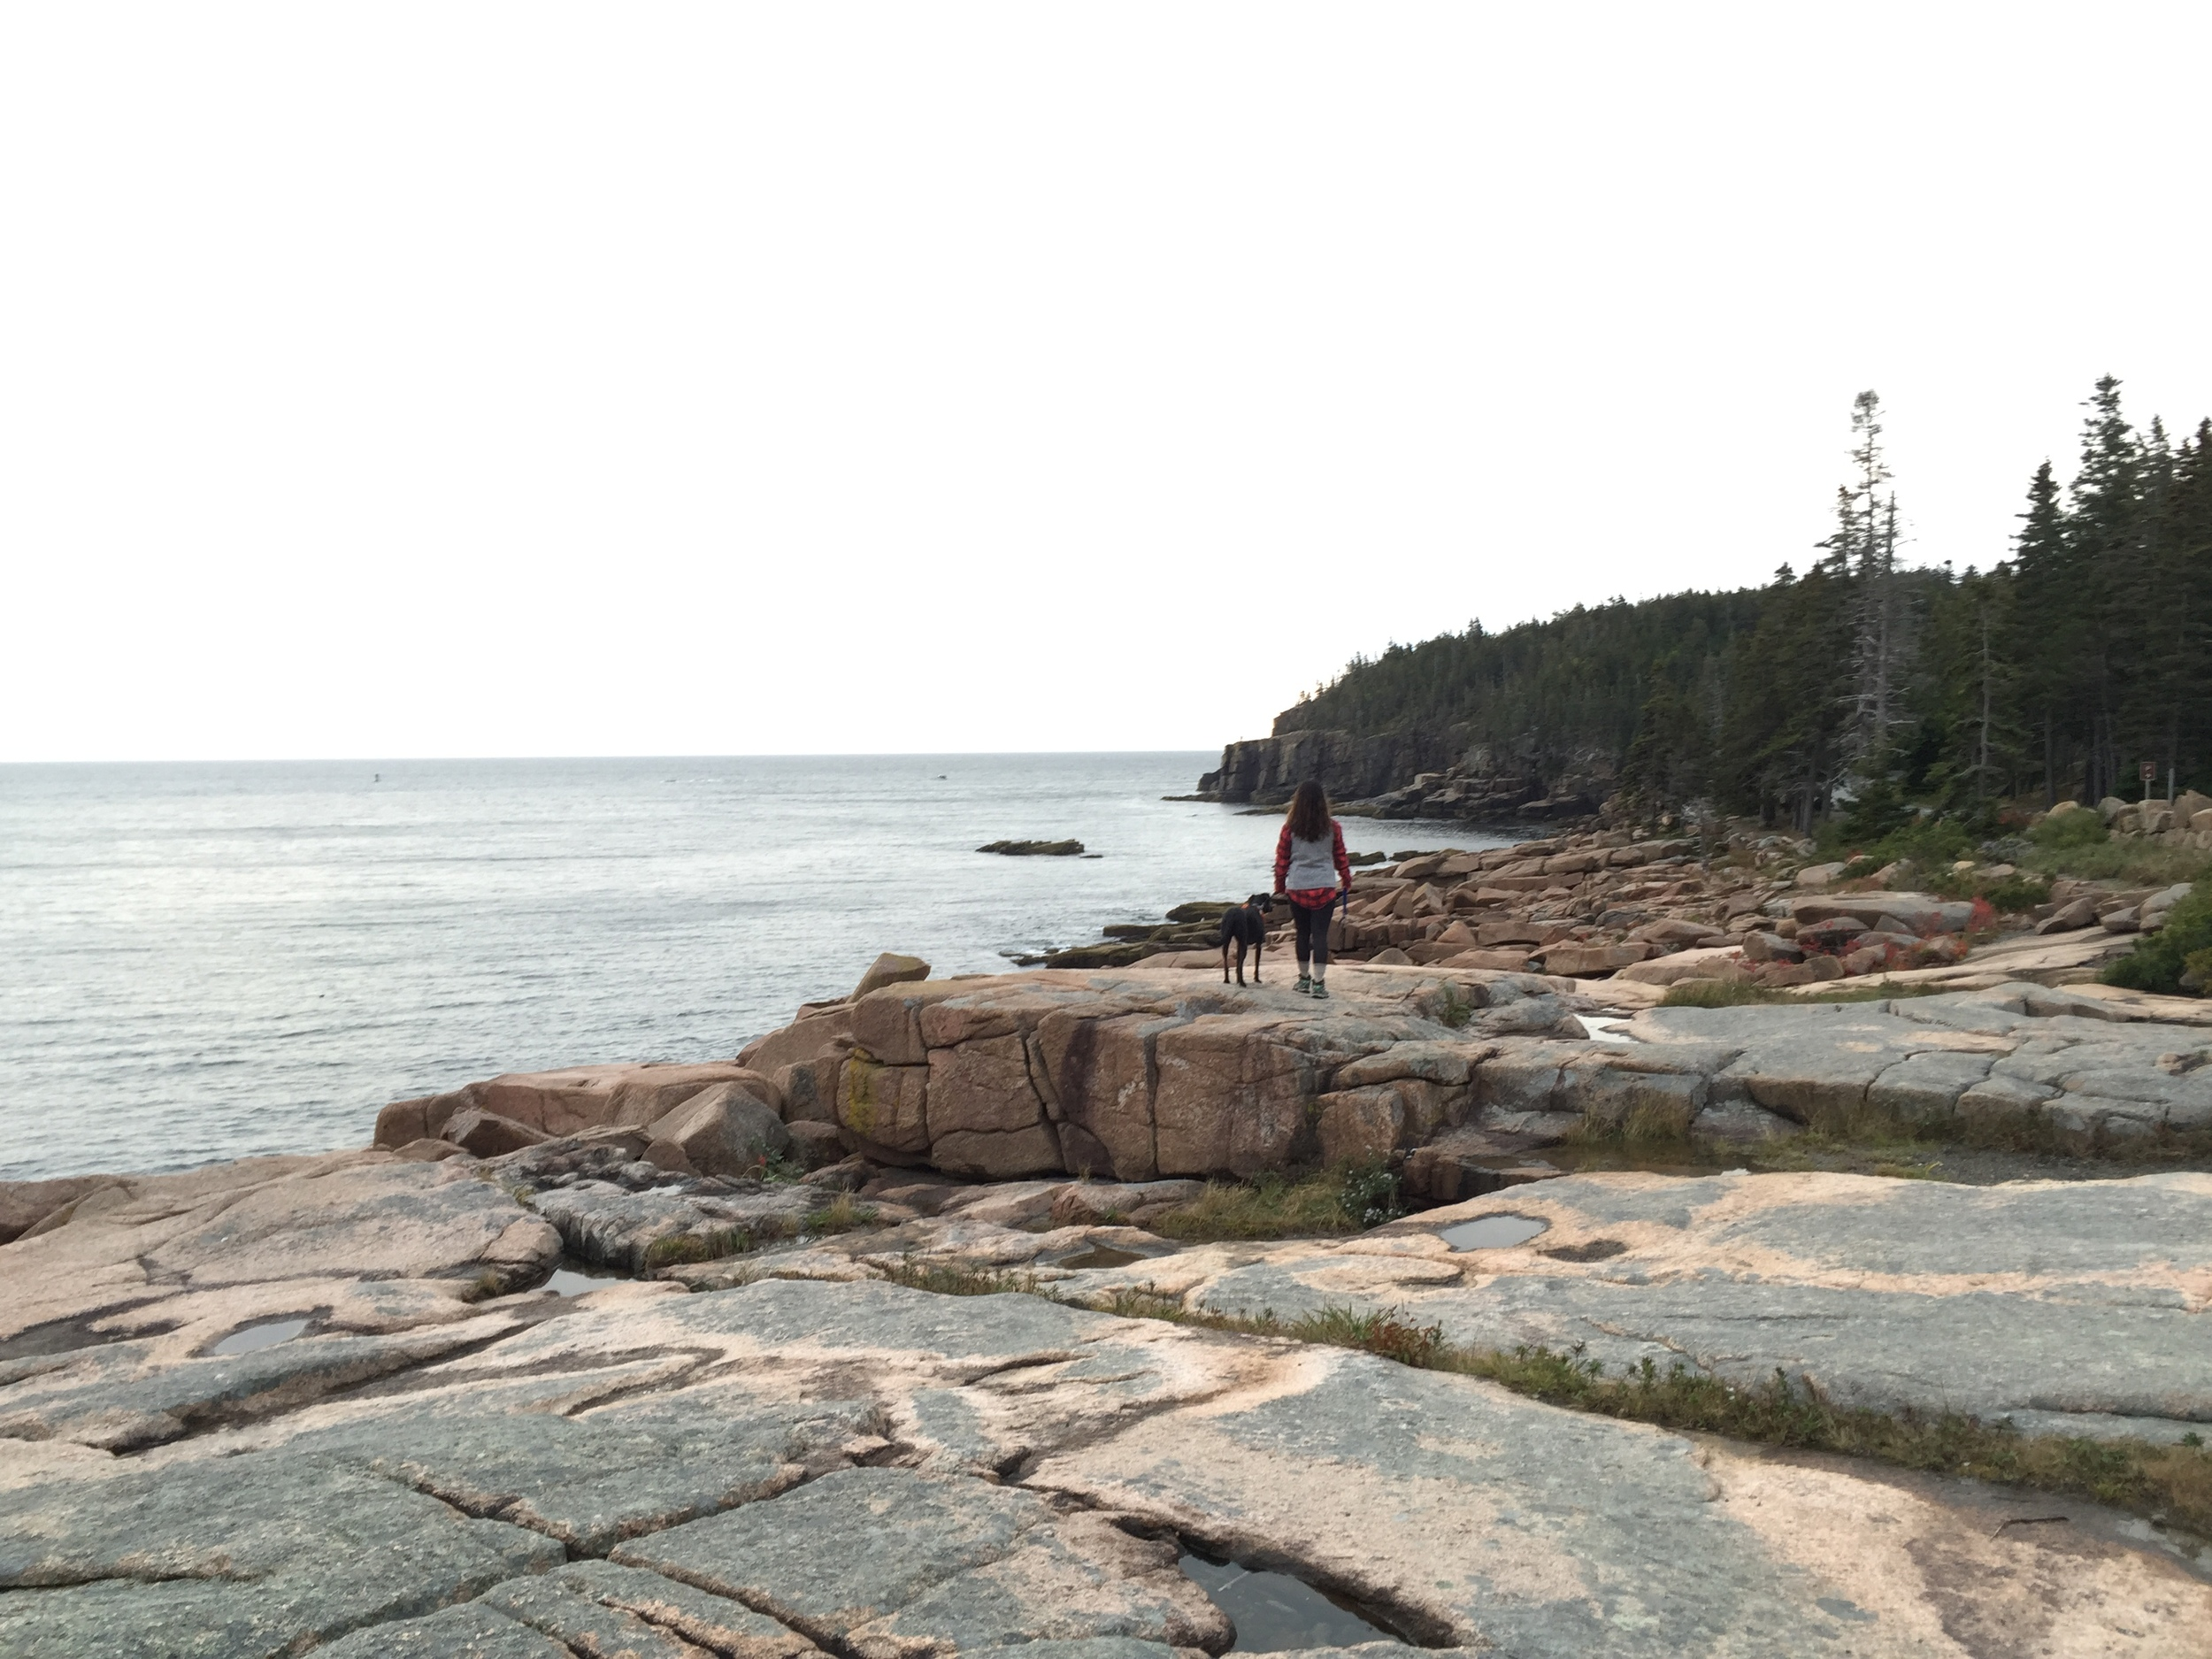 One of the vista points along Ocean Path